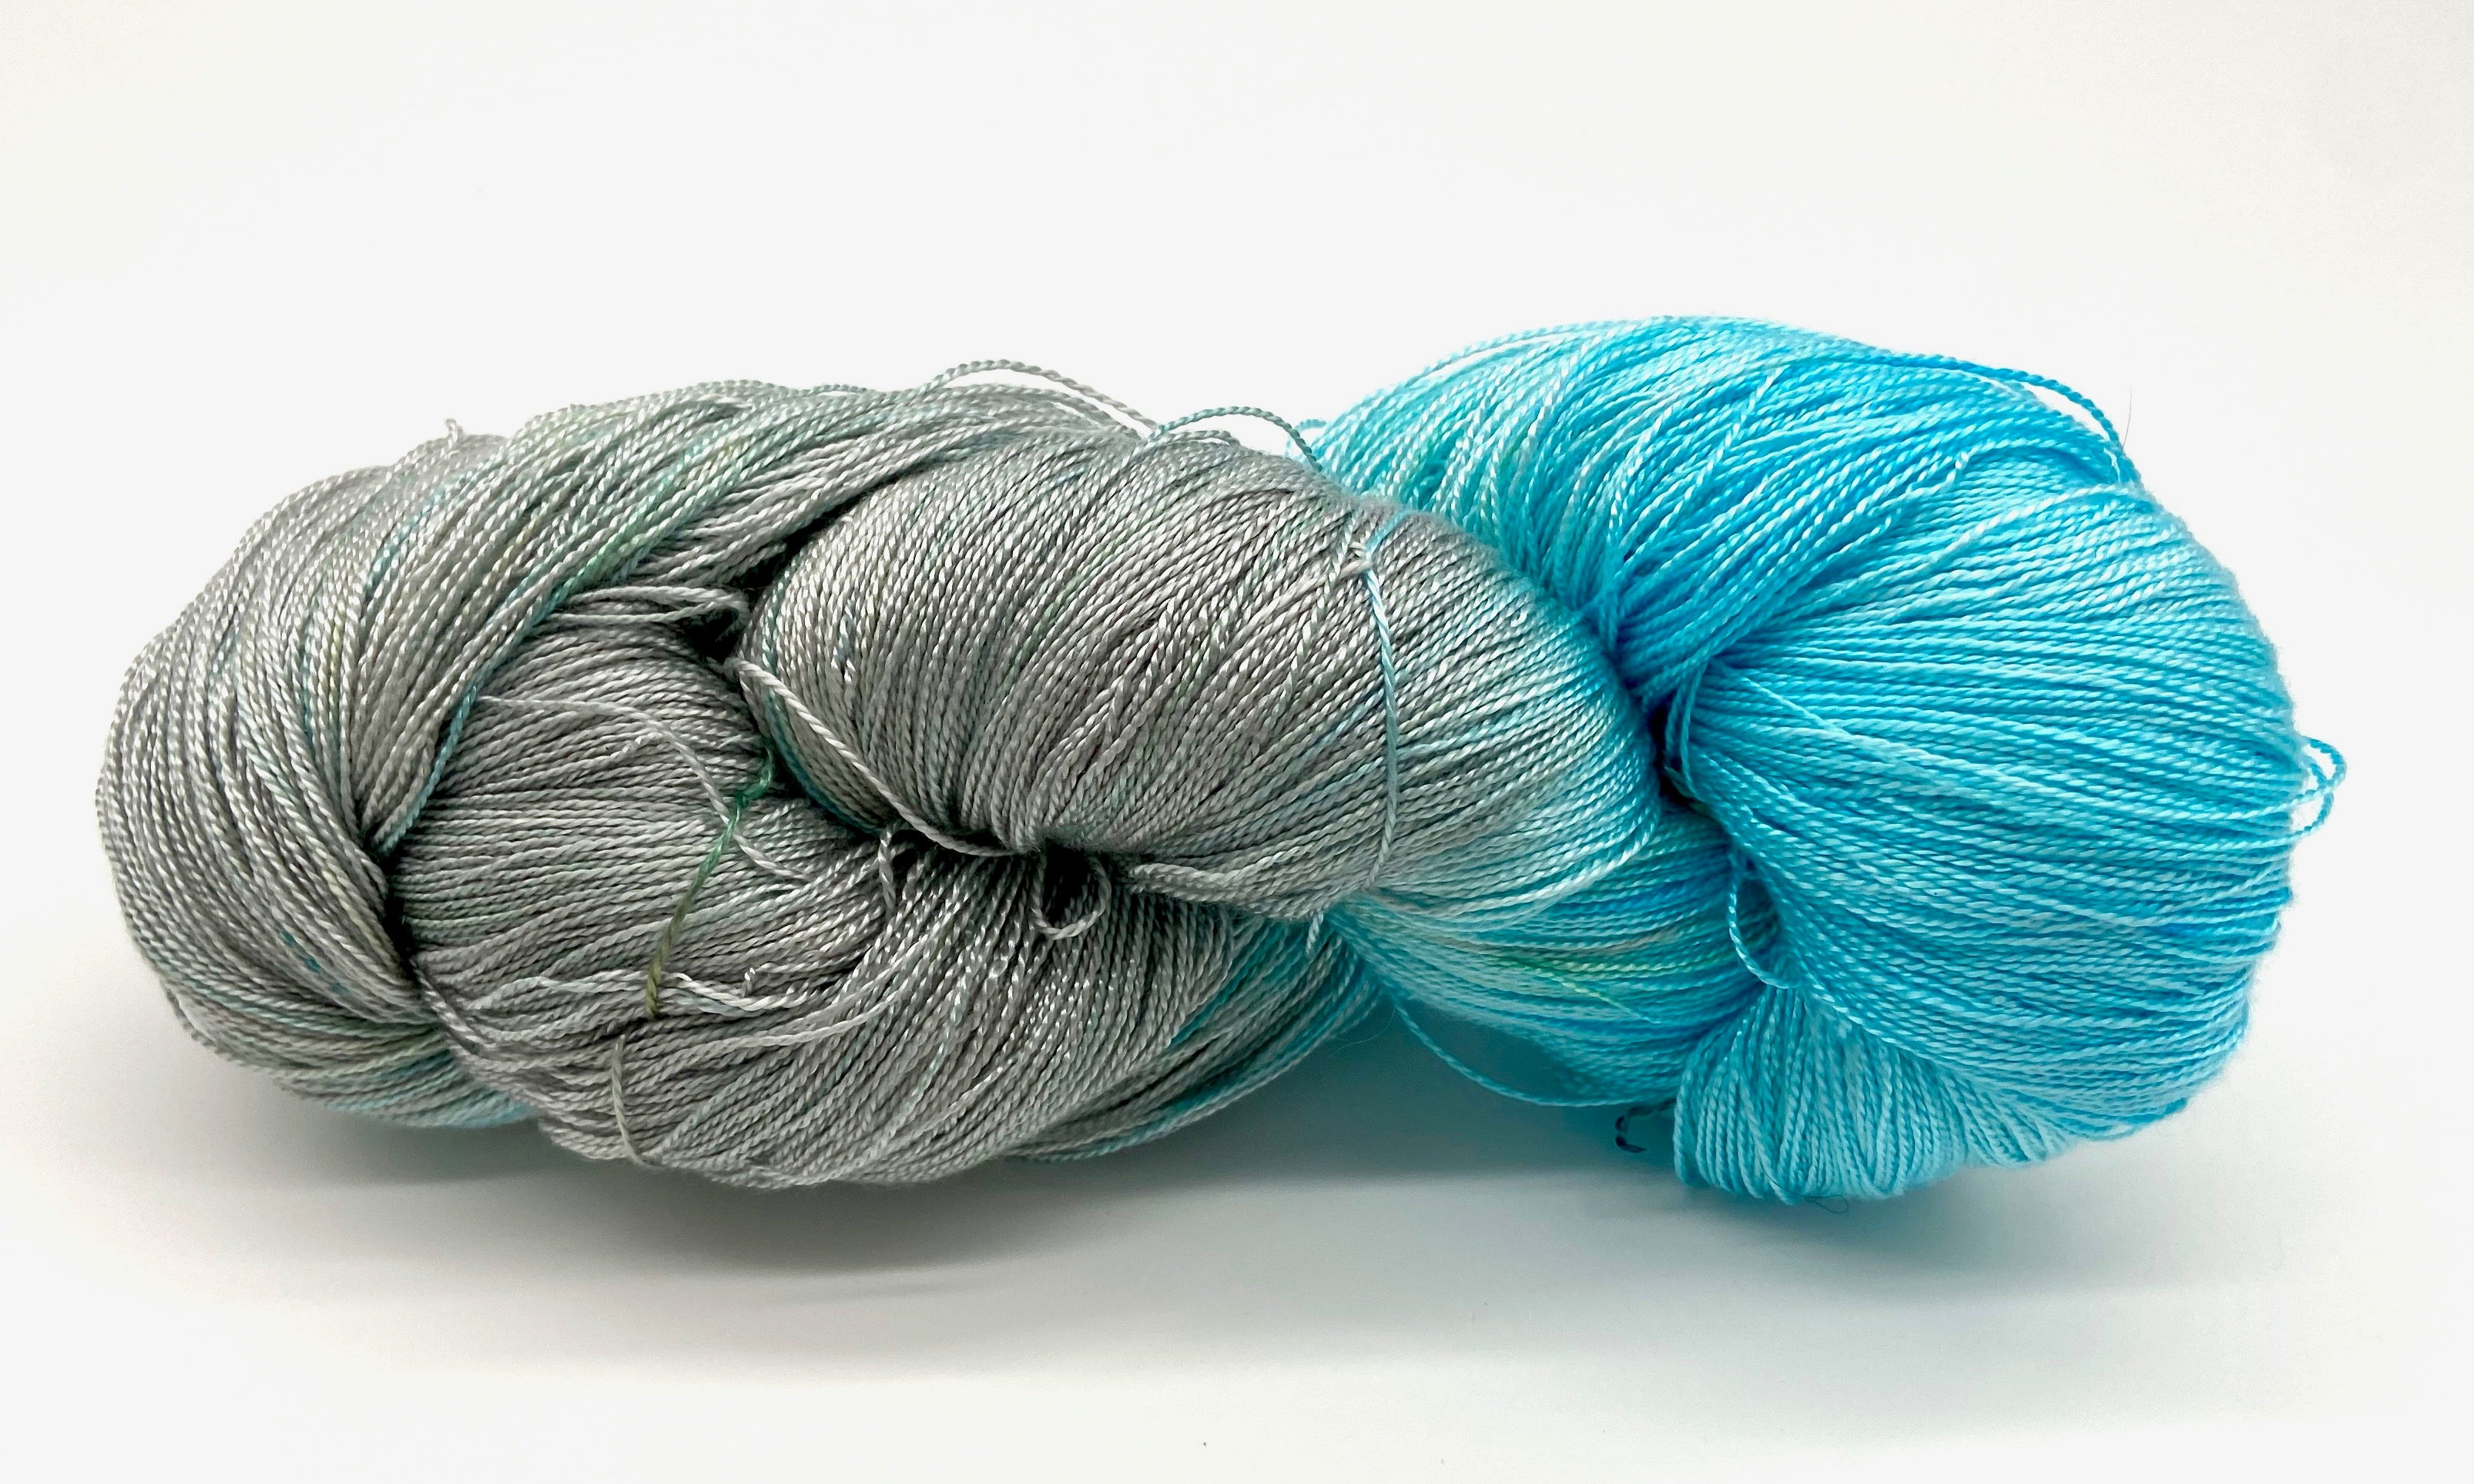 Hand Painted Tencel 5/2 Skeins - Sydney Sogol, Hand dyed Yarn, hand-painted-tencel-5-2-skeins, eco-friendly yarn, Hand dyed tencel Yarn, hand dyed yarn, hand painted yarn, tencel yarn, weavin